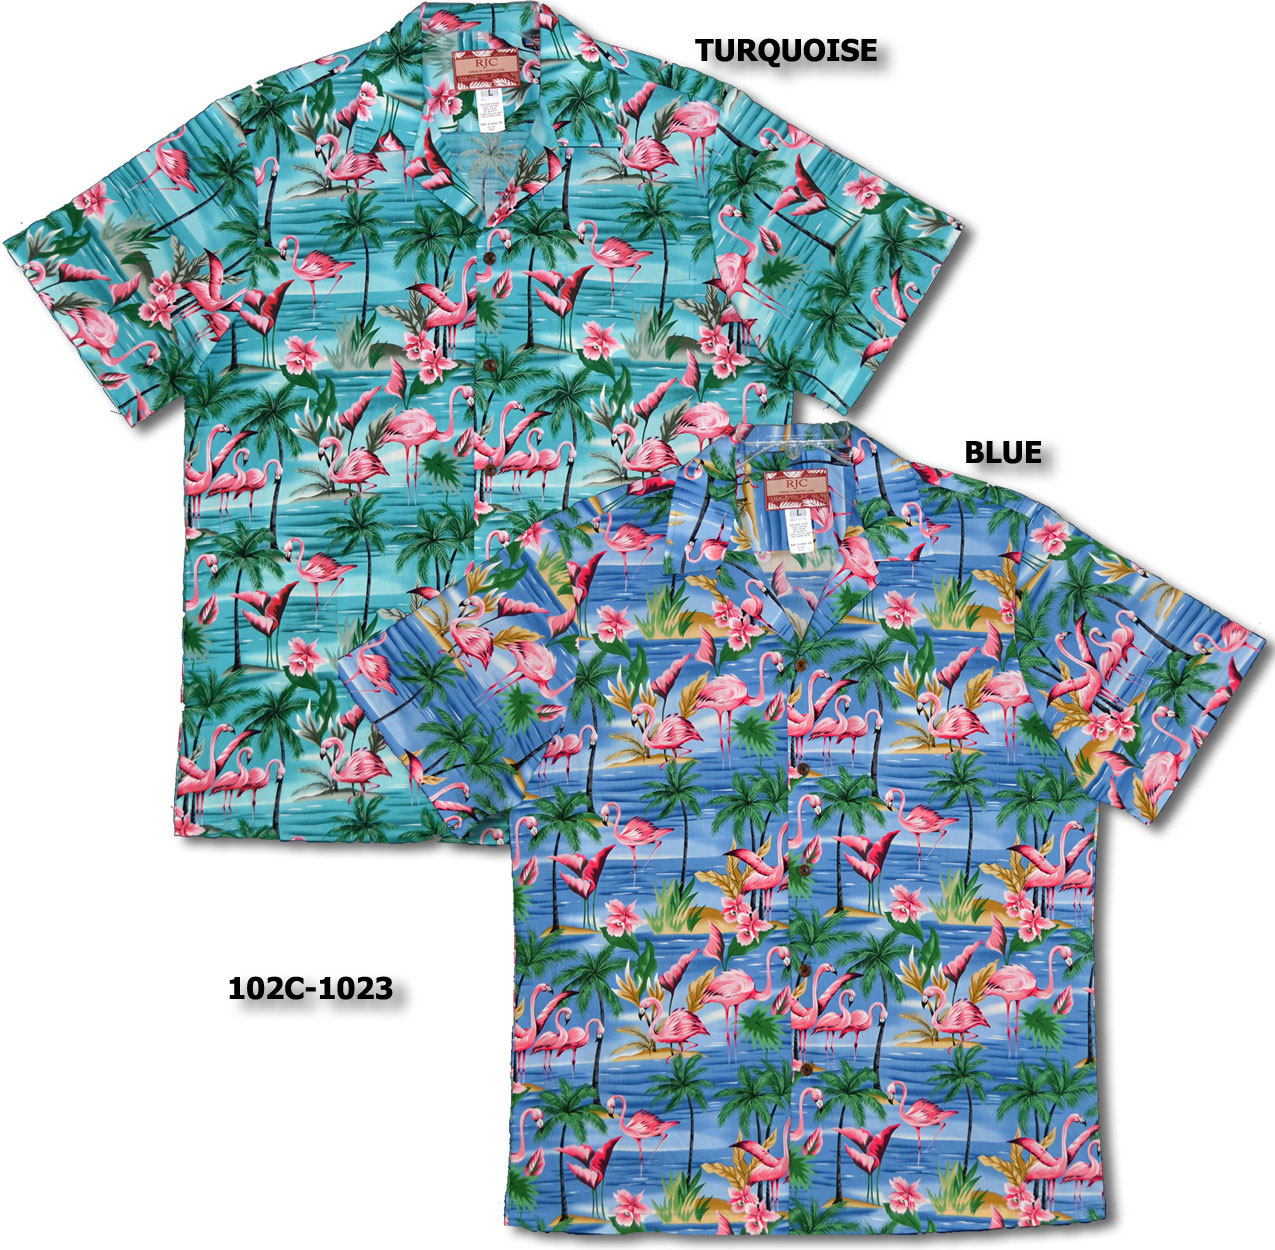 25072ddf7 Men's, Women's & Kids Pink Flamingo Made in Hawaii Clothing - Men's, Boy's,  Women's & Girl's Pink Flamingos Hawaiian Shirts, Dresses Aloha Apparel